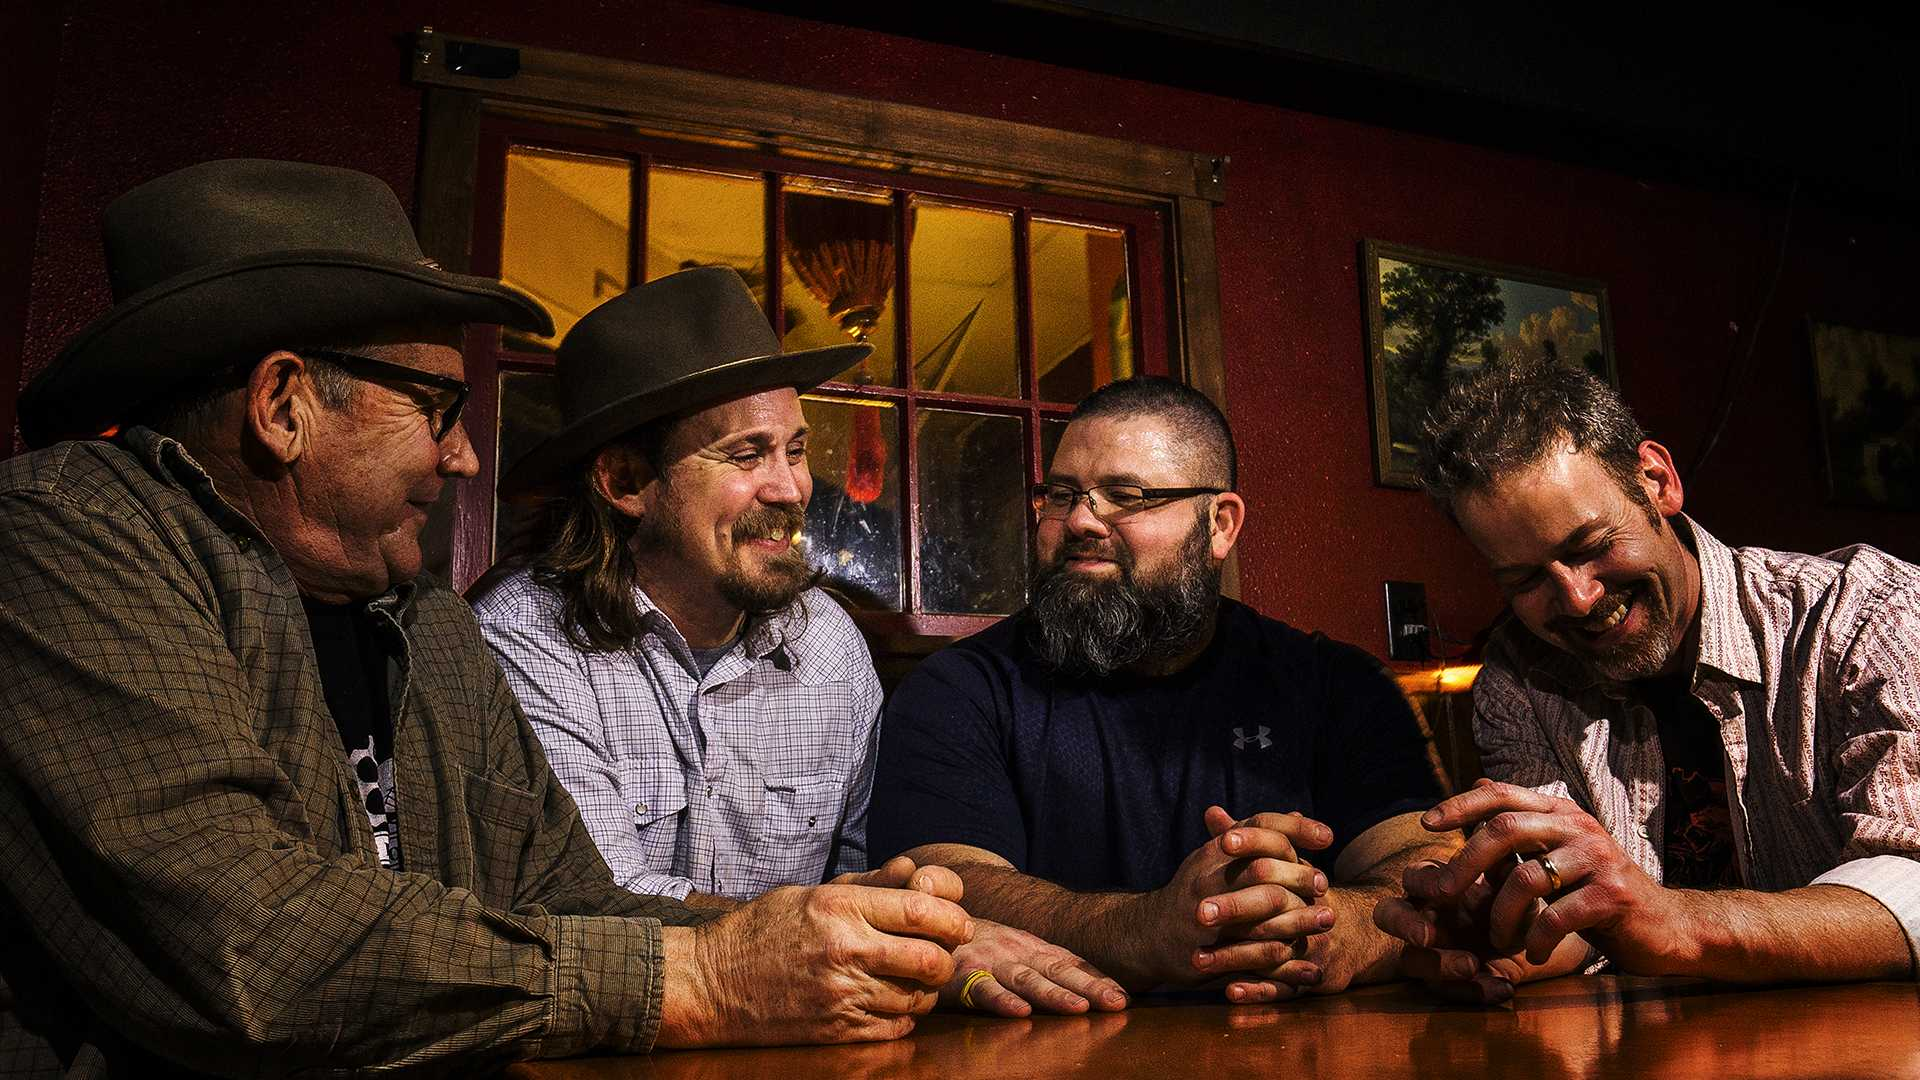 Tim Buhmeyer, Eric Pettit, Micah Oleson, and Ed Manseim pose for a group photo shortly after performing of the Eric Pettit Lions at The Mill on Friday, Feb. 9, 2017. The group hails from Burlington, Iowa and considers themselves as weekend warriors with their unique blend of old timey folk music. (James Year/The Daily Iowan)